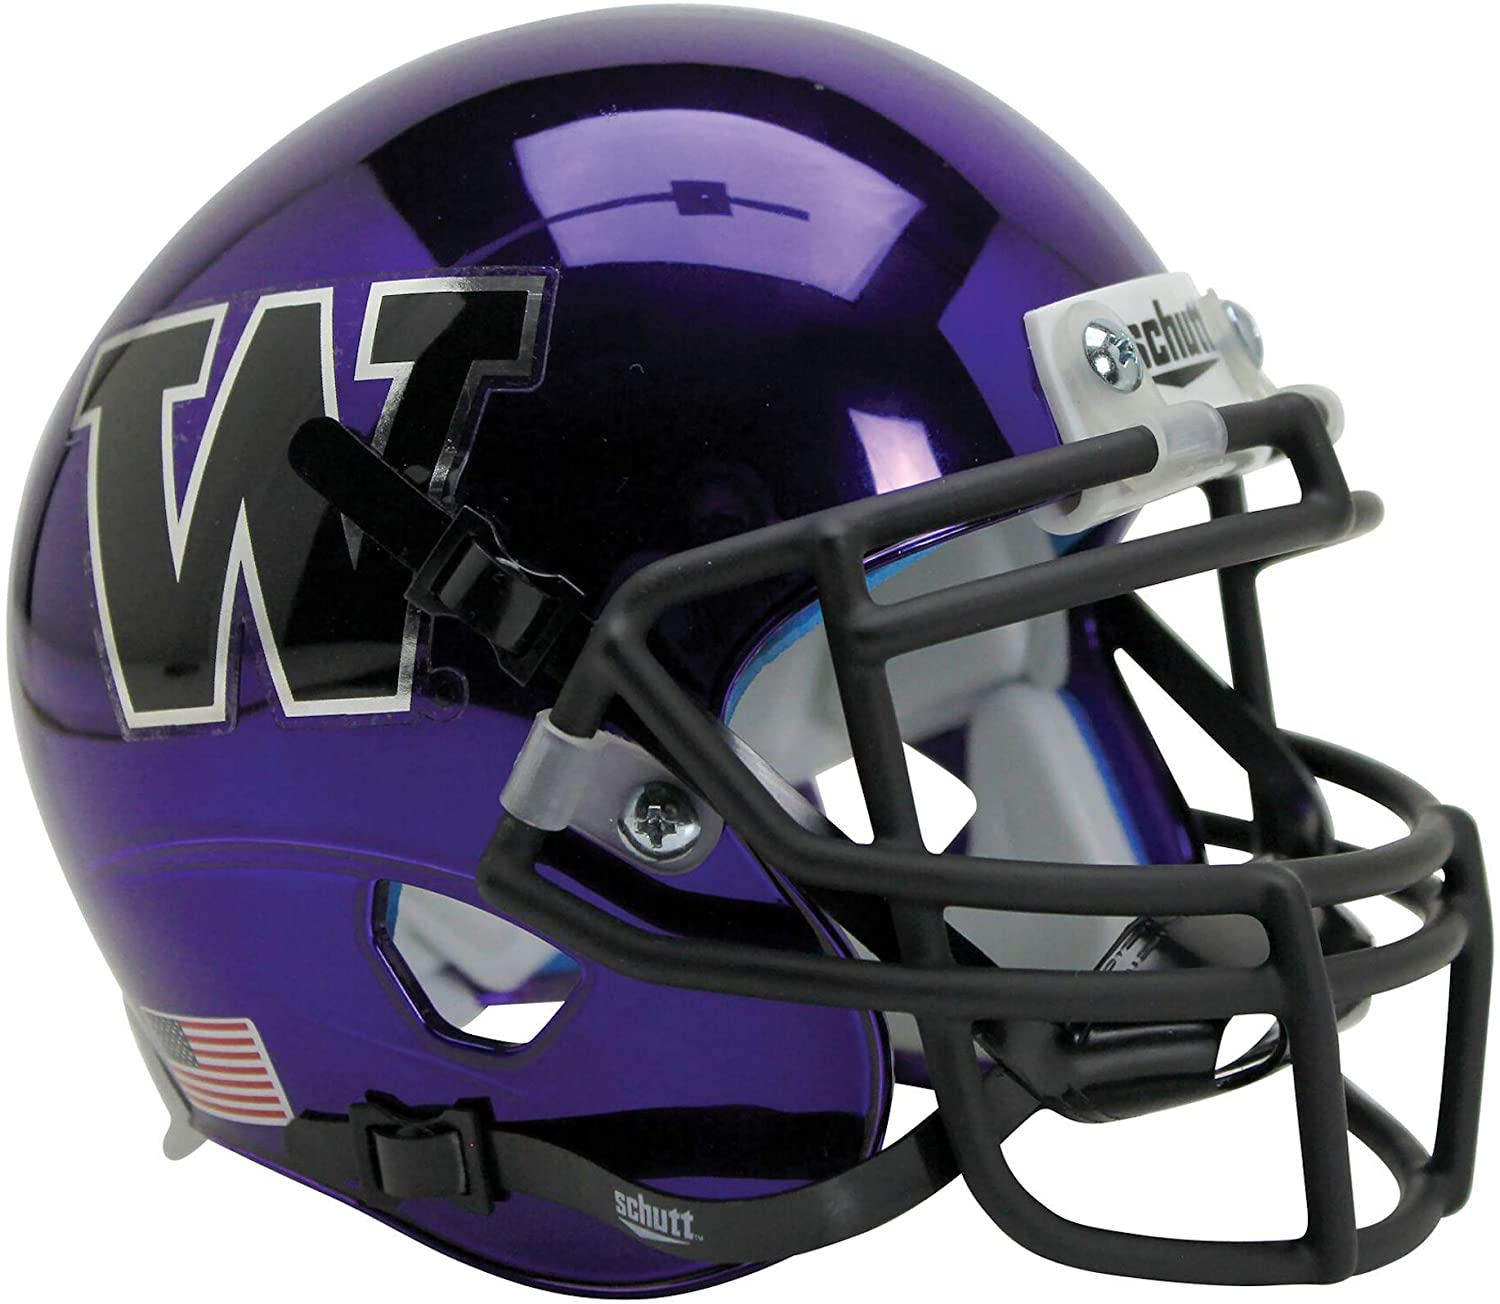 Schutt NCAA Washington Huskies Collectible On-Field Authentic Football Helmet